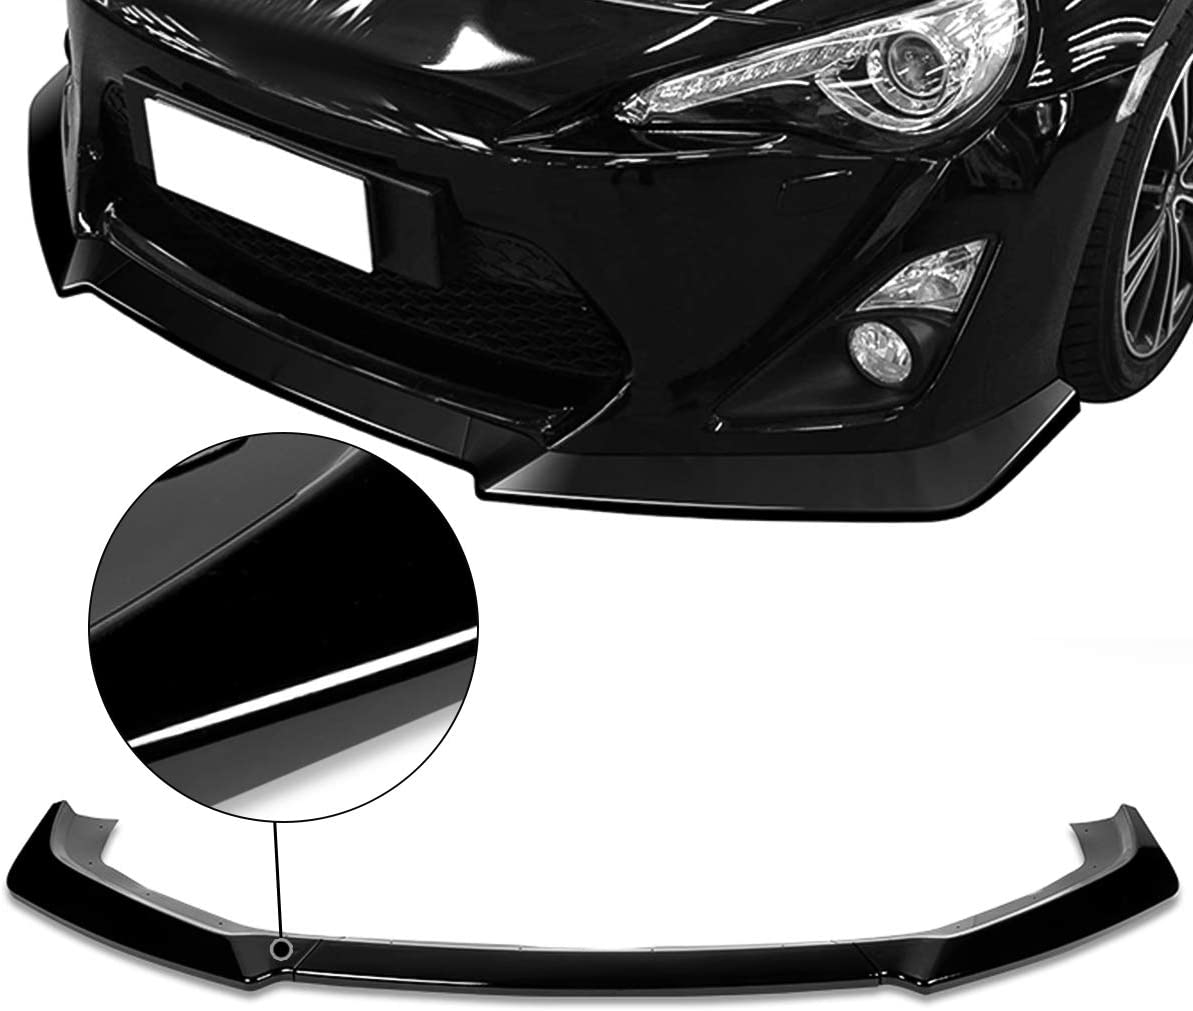 DNA Motoring 2-PU-506-PBK 3Pc Glossy Black ABS Front Bumper Lip with Vertical Stabilizer Replacement For 13-16 FRS